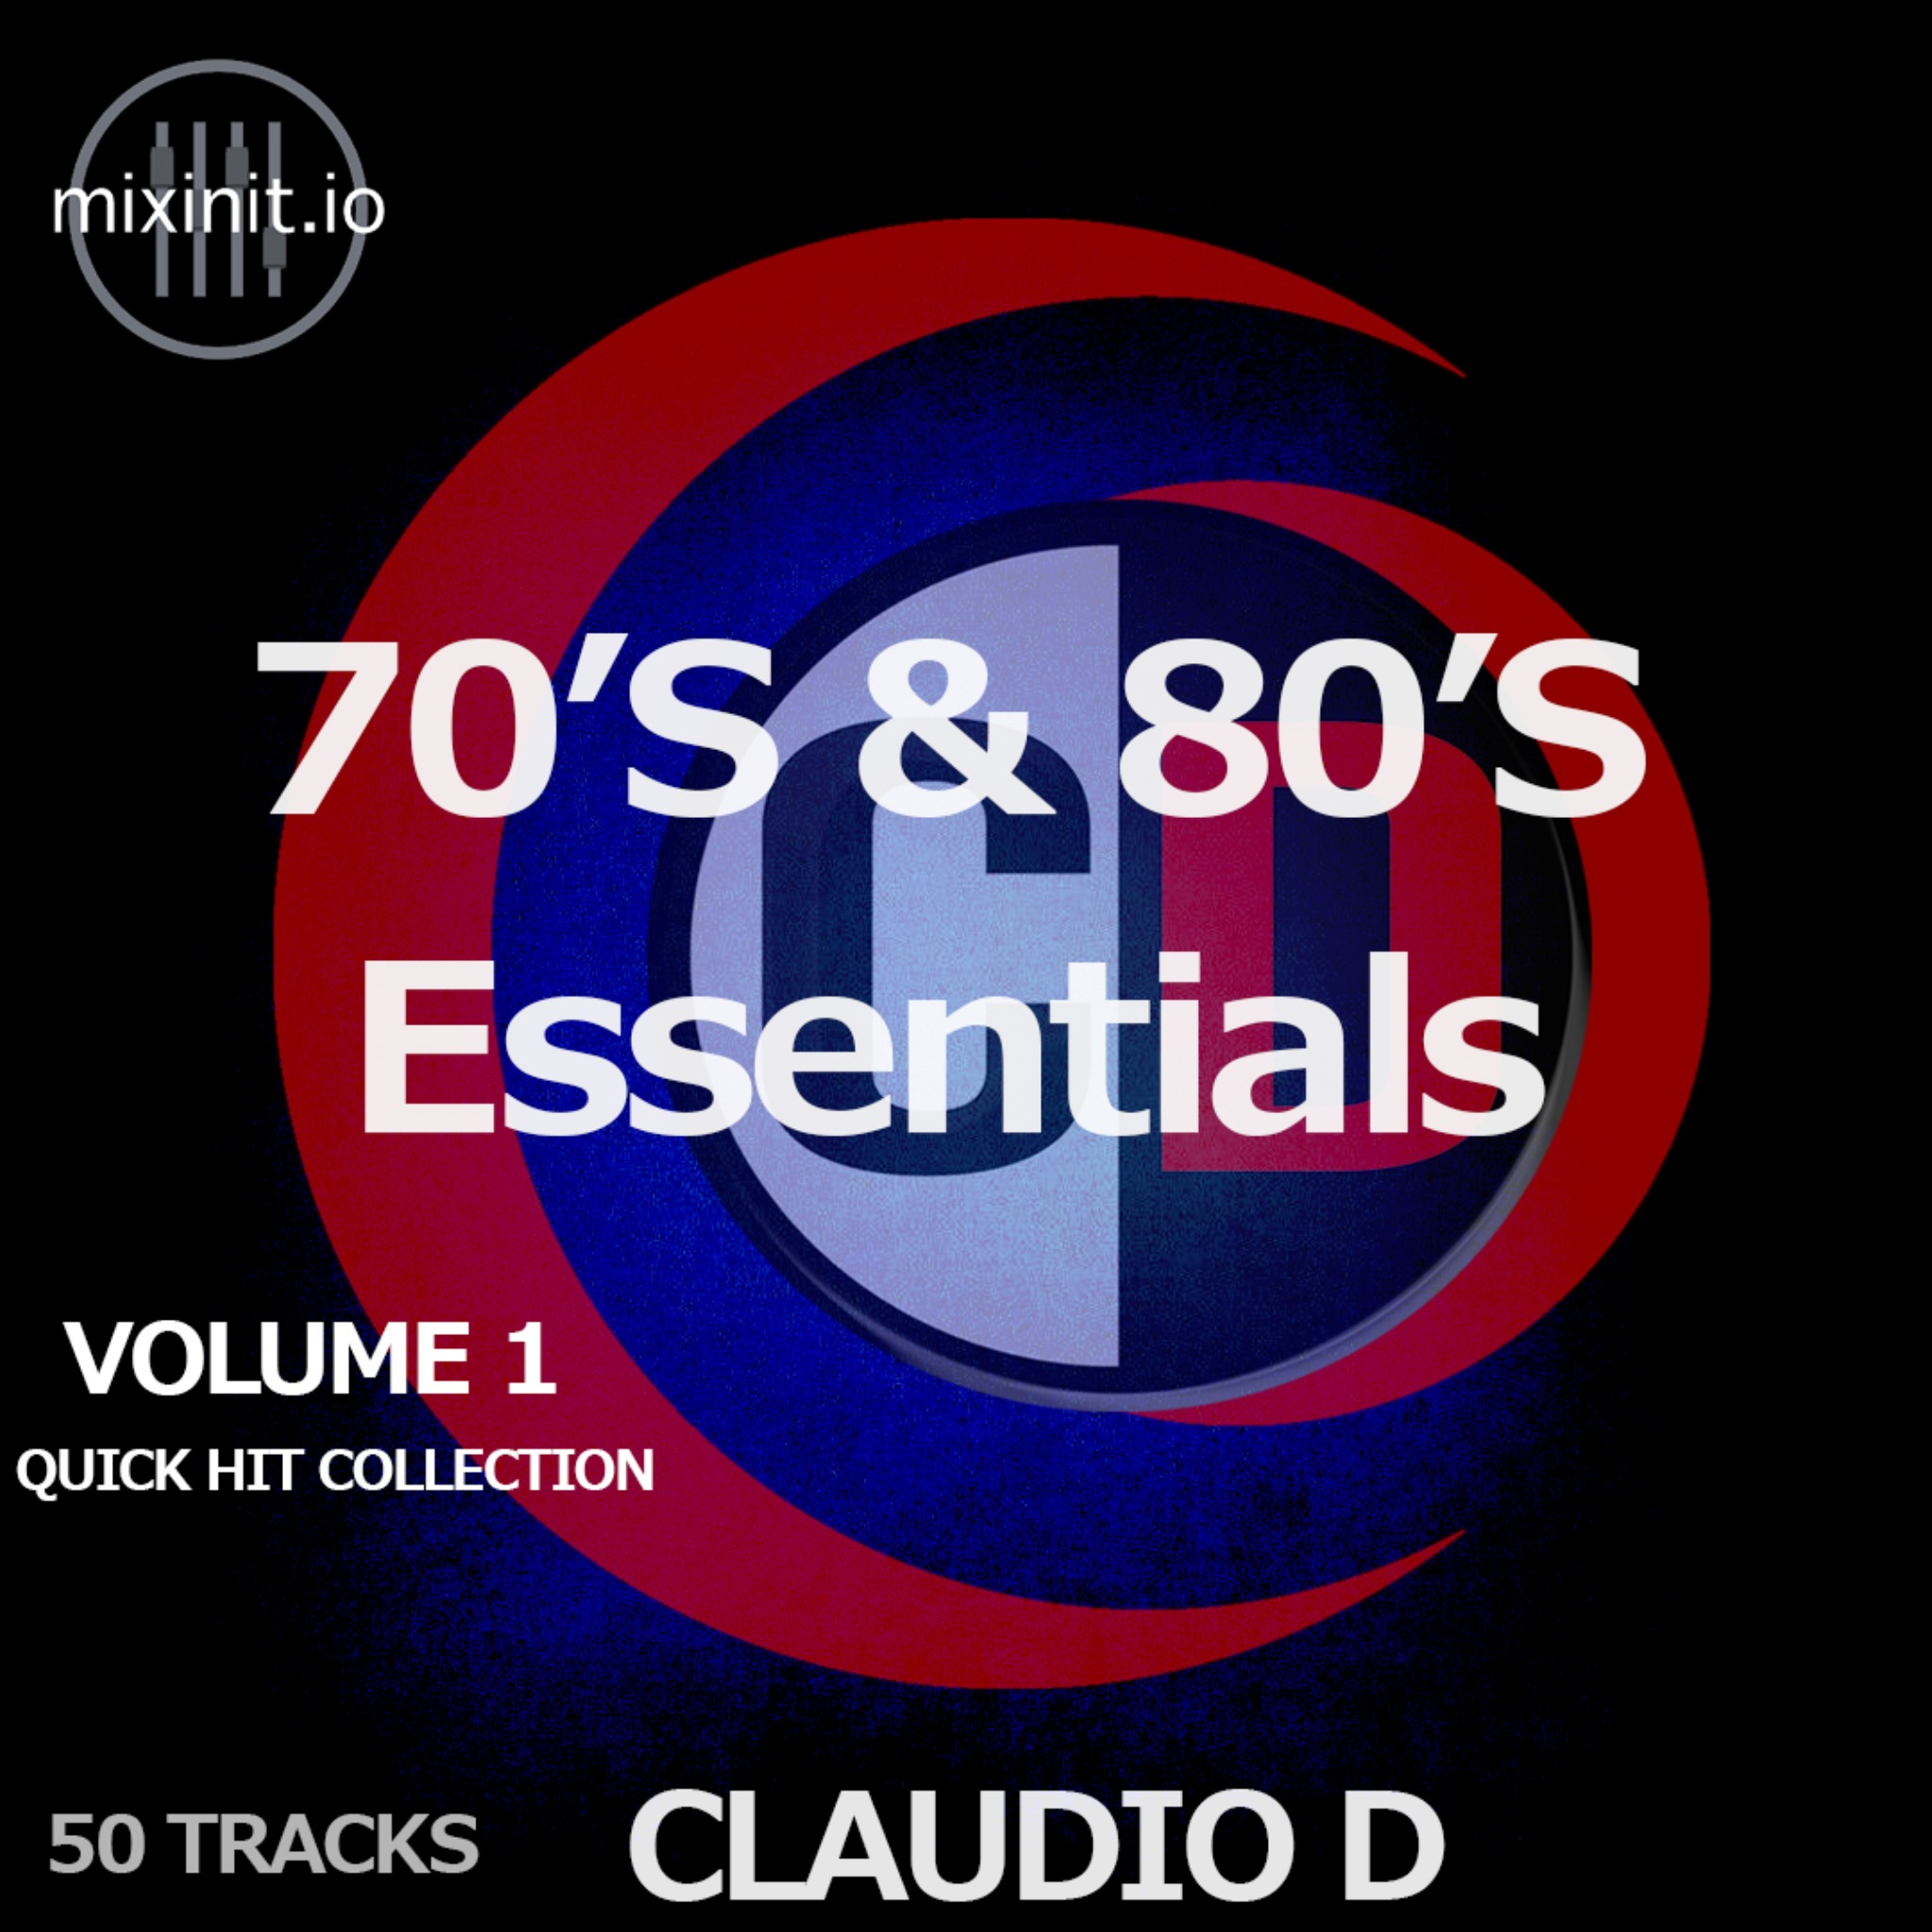 Claudio D - 70's & 80's Essentials Vol. 1 (Quick Hits 50 Pack)